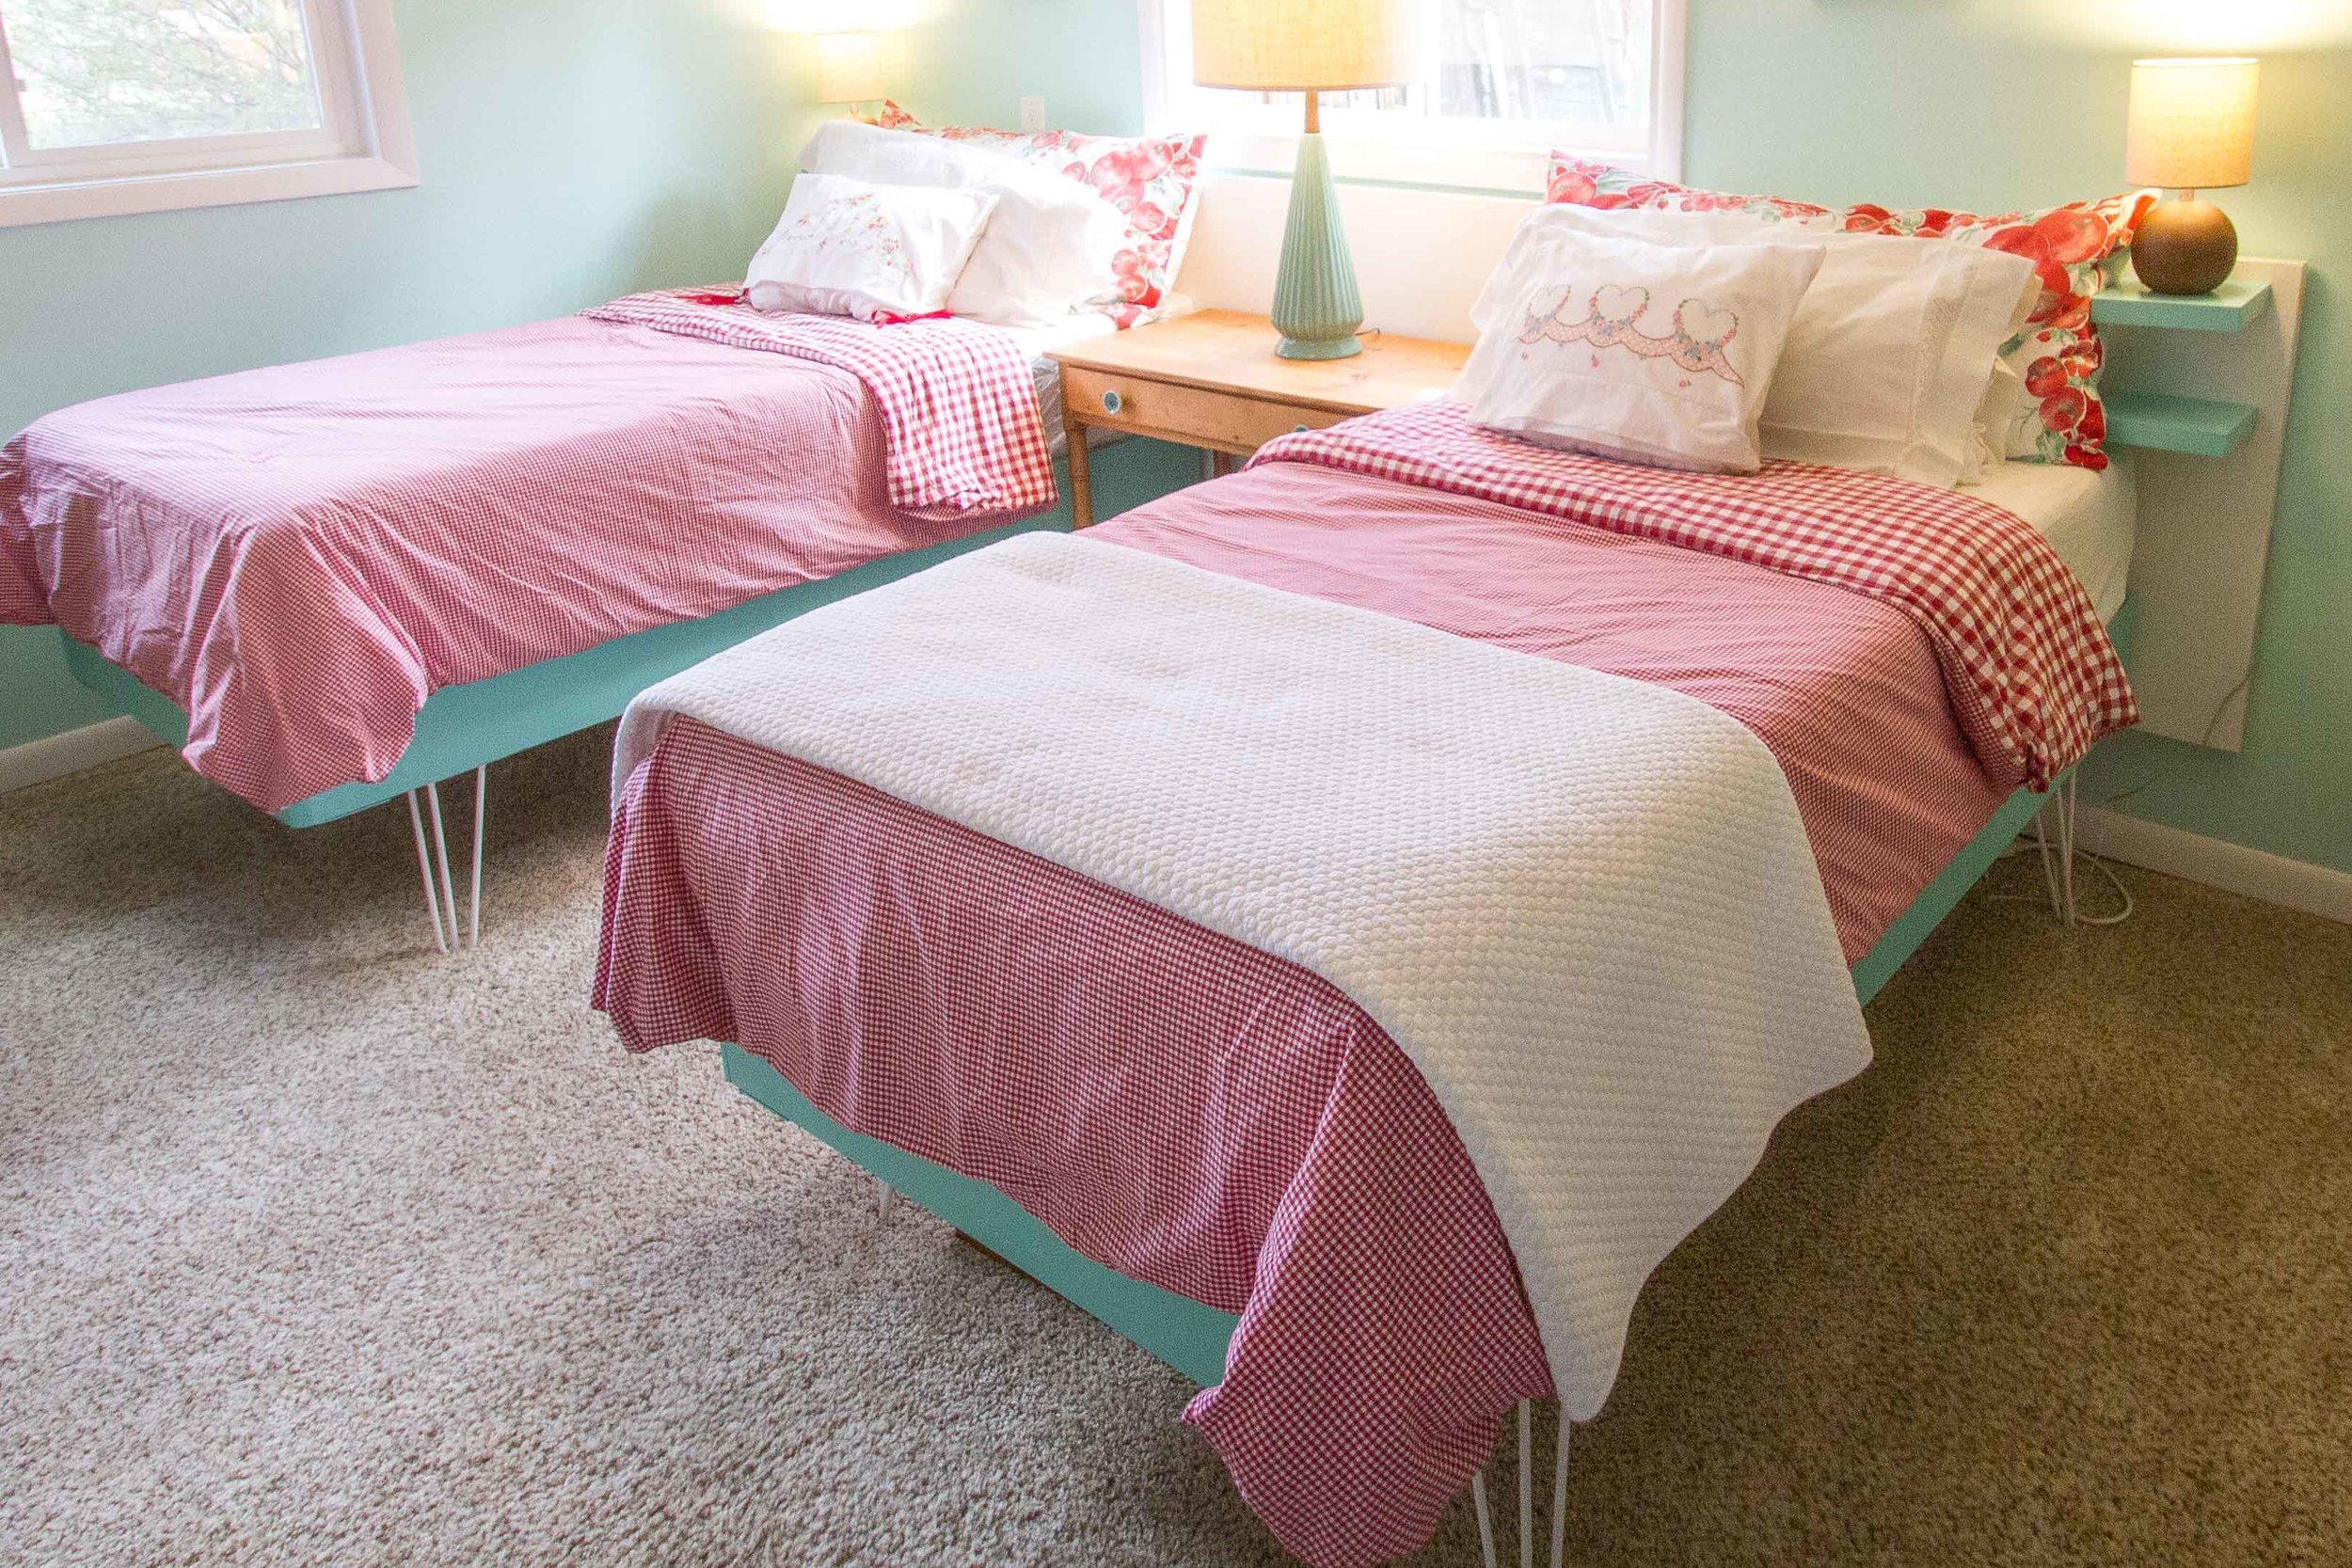 Bedding & Linens - Spring 2019One Room Challenge